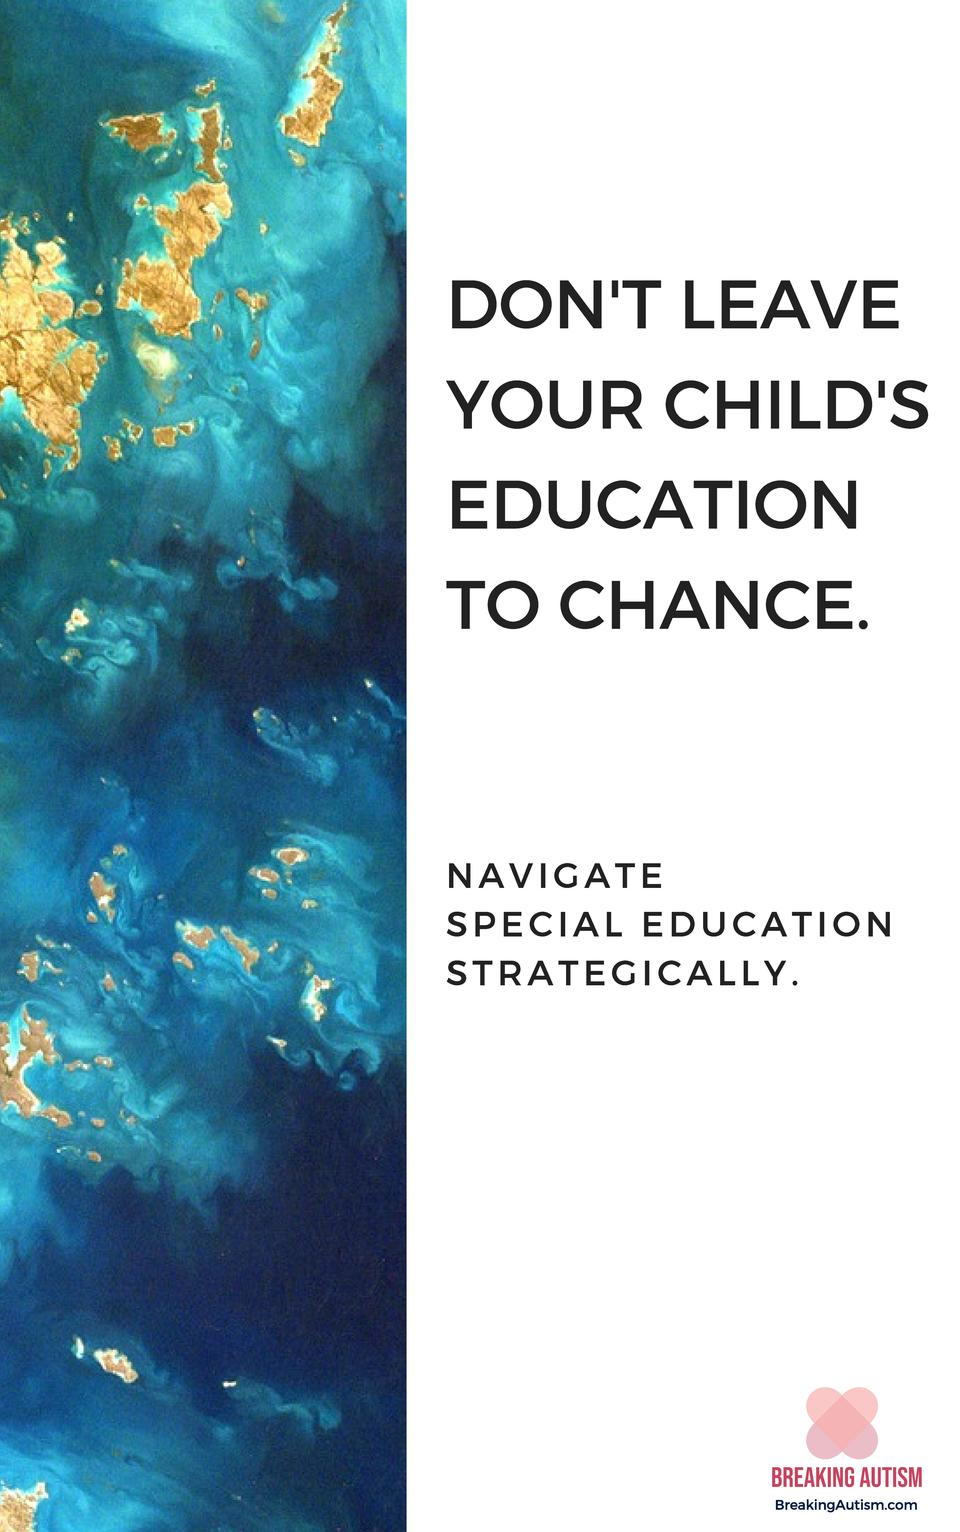 DON T LEAVE YOUR CHILD S EDUCATION TO CHANCE.  NAVIGATE SPECIAL EDUCATION STRATEGICALLY.  BreakingAutism.com